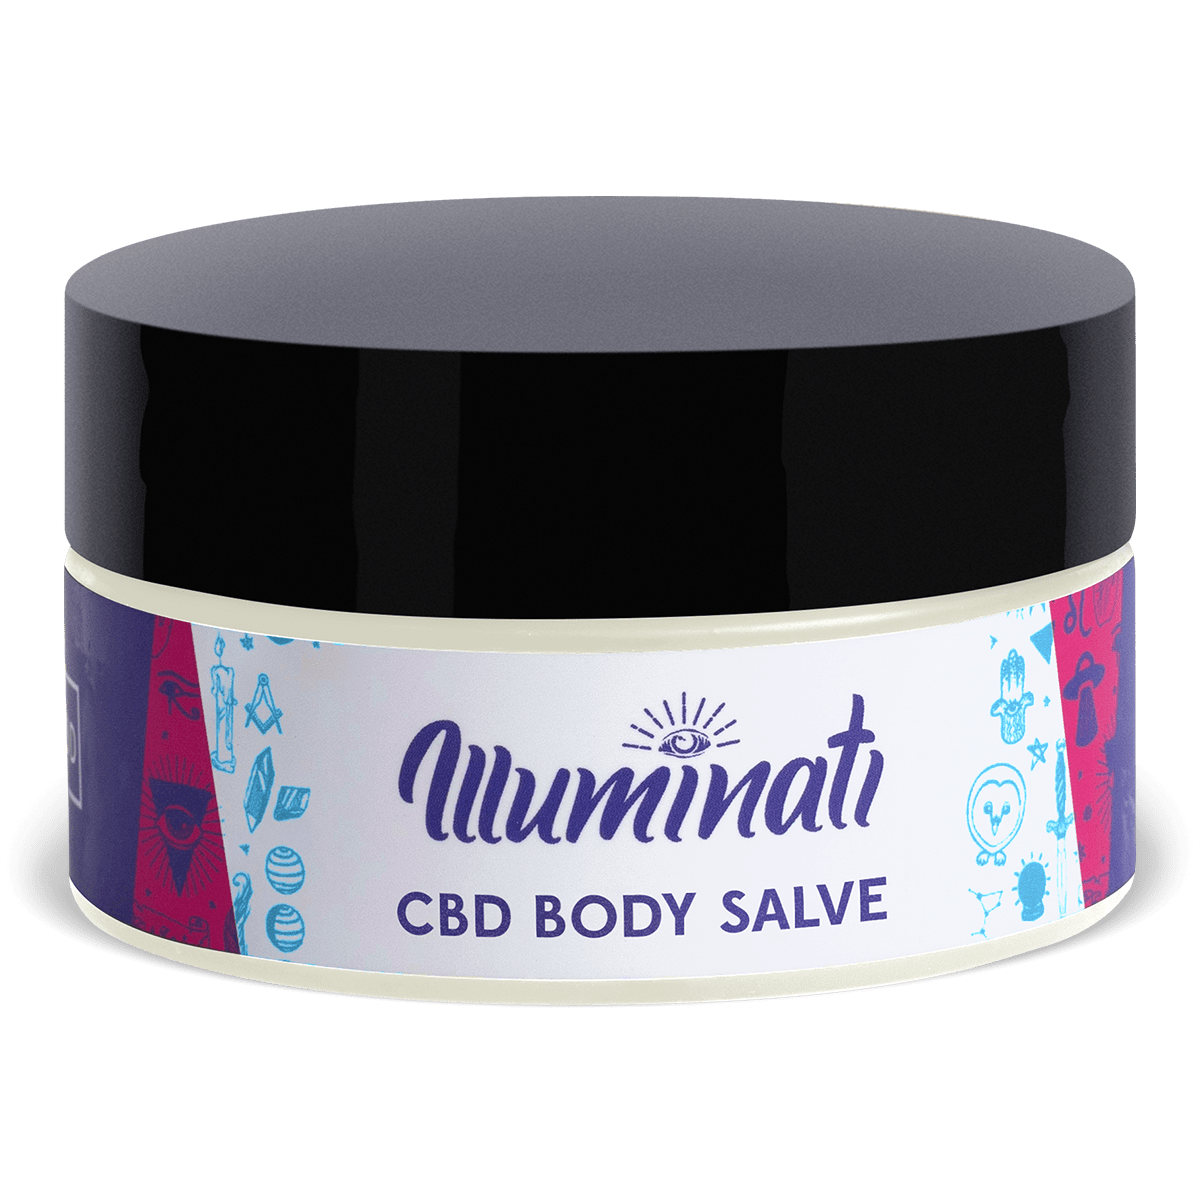 Illuminati CBD Body Salve 1600mg